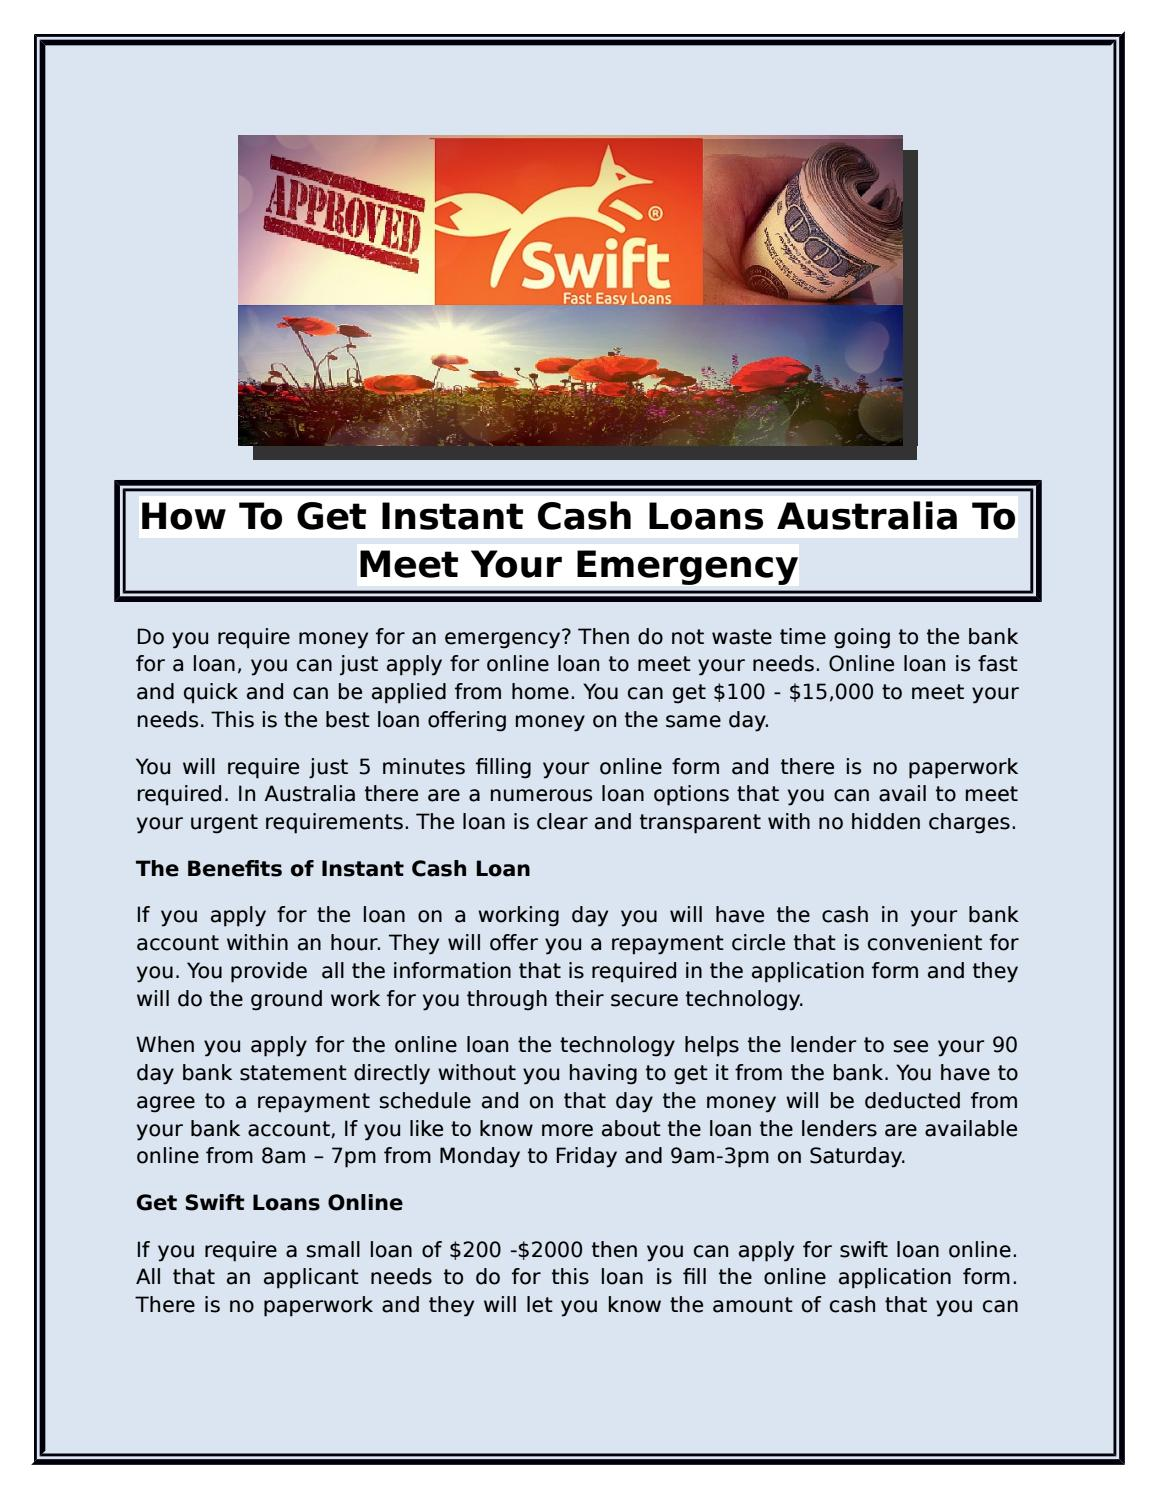 How To Get Instant Cash Loans Australia To Meet Your